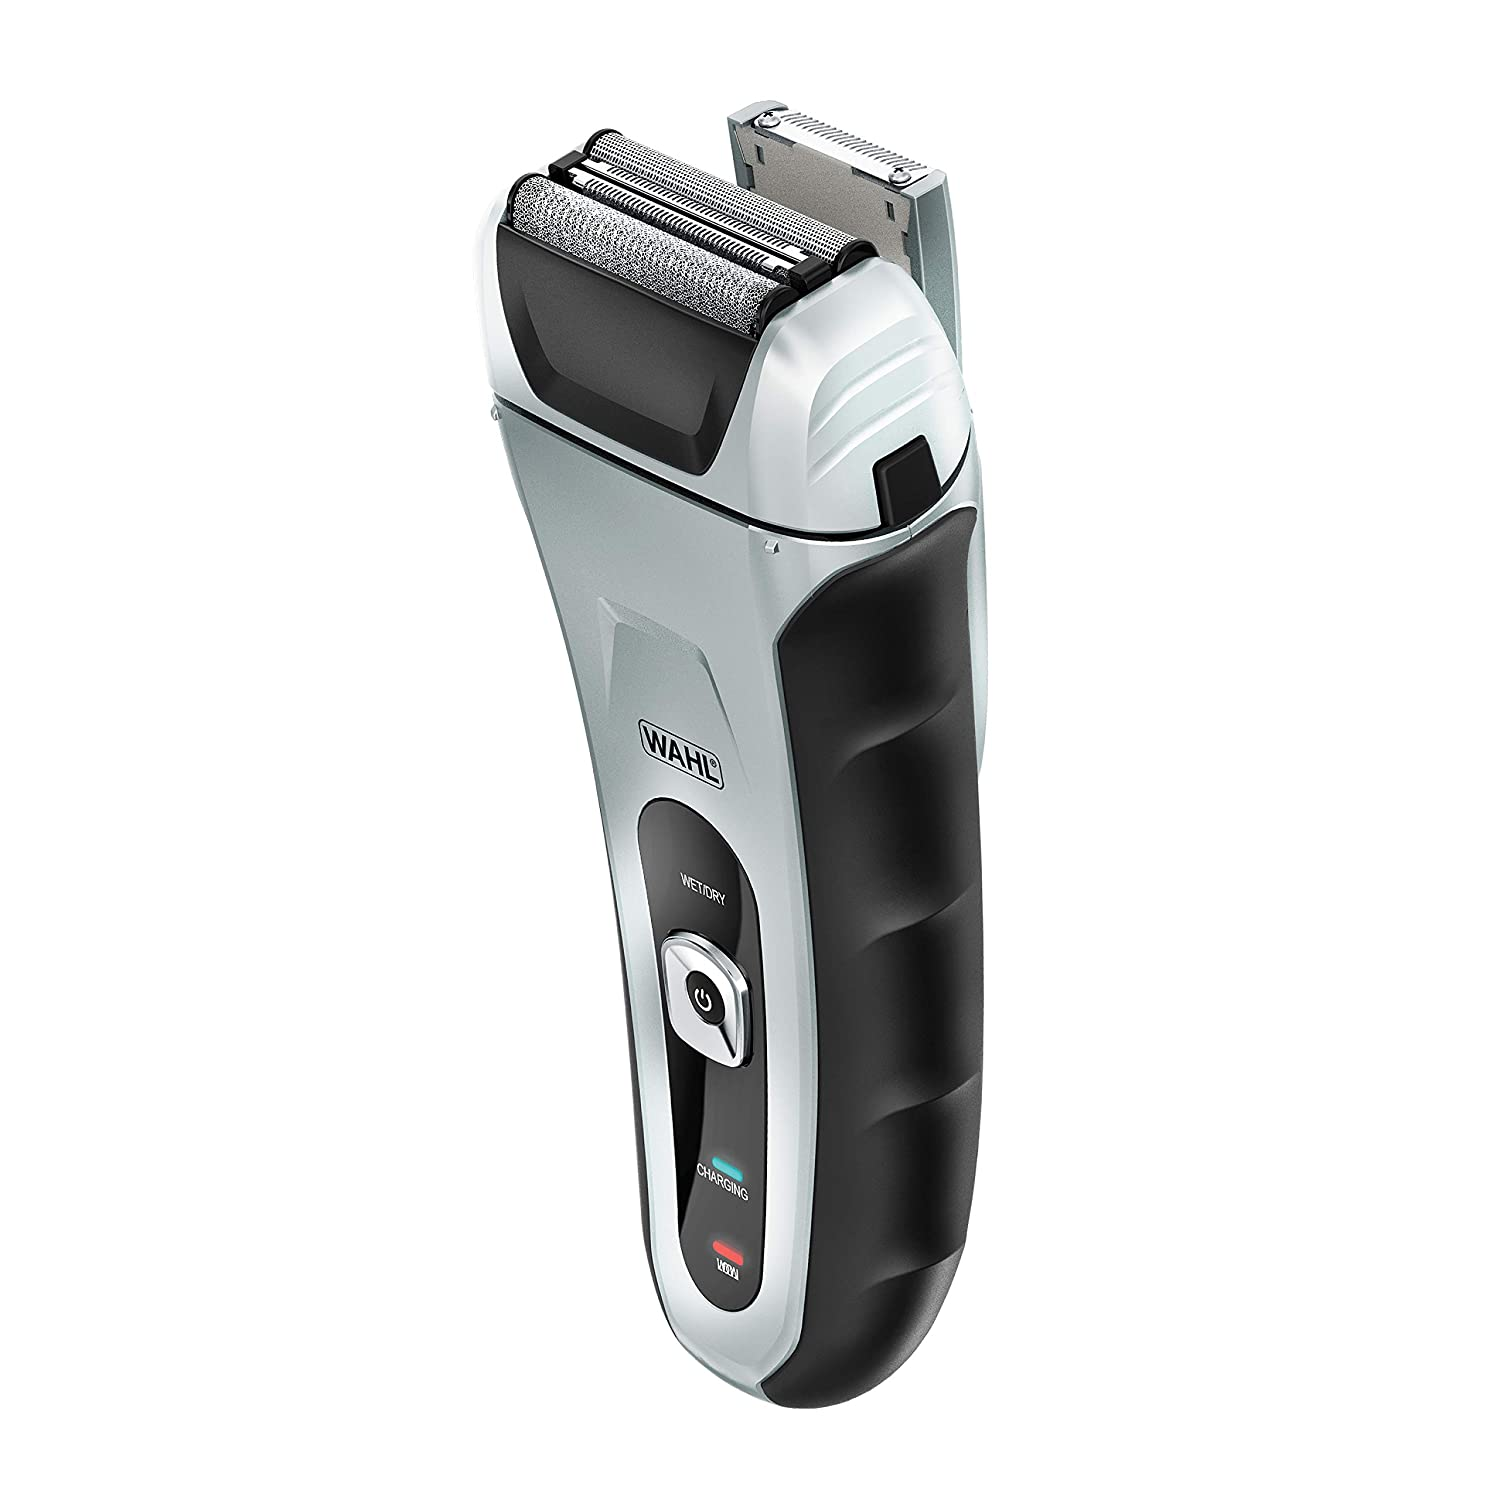 817nQTjpdVL. SL1500 Wahl Speed Shave Foil Shavers Electric Razors Review